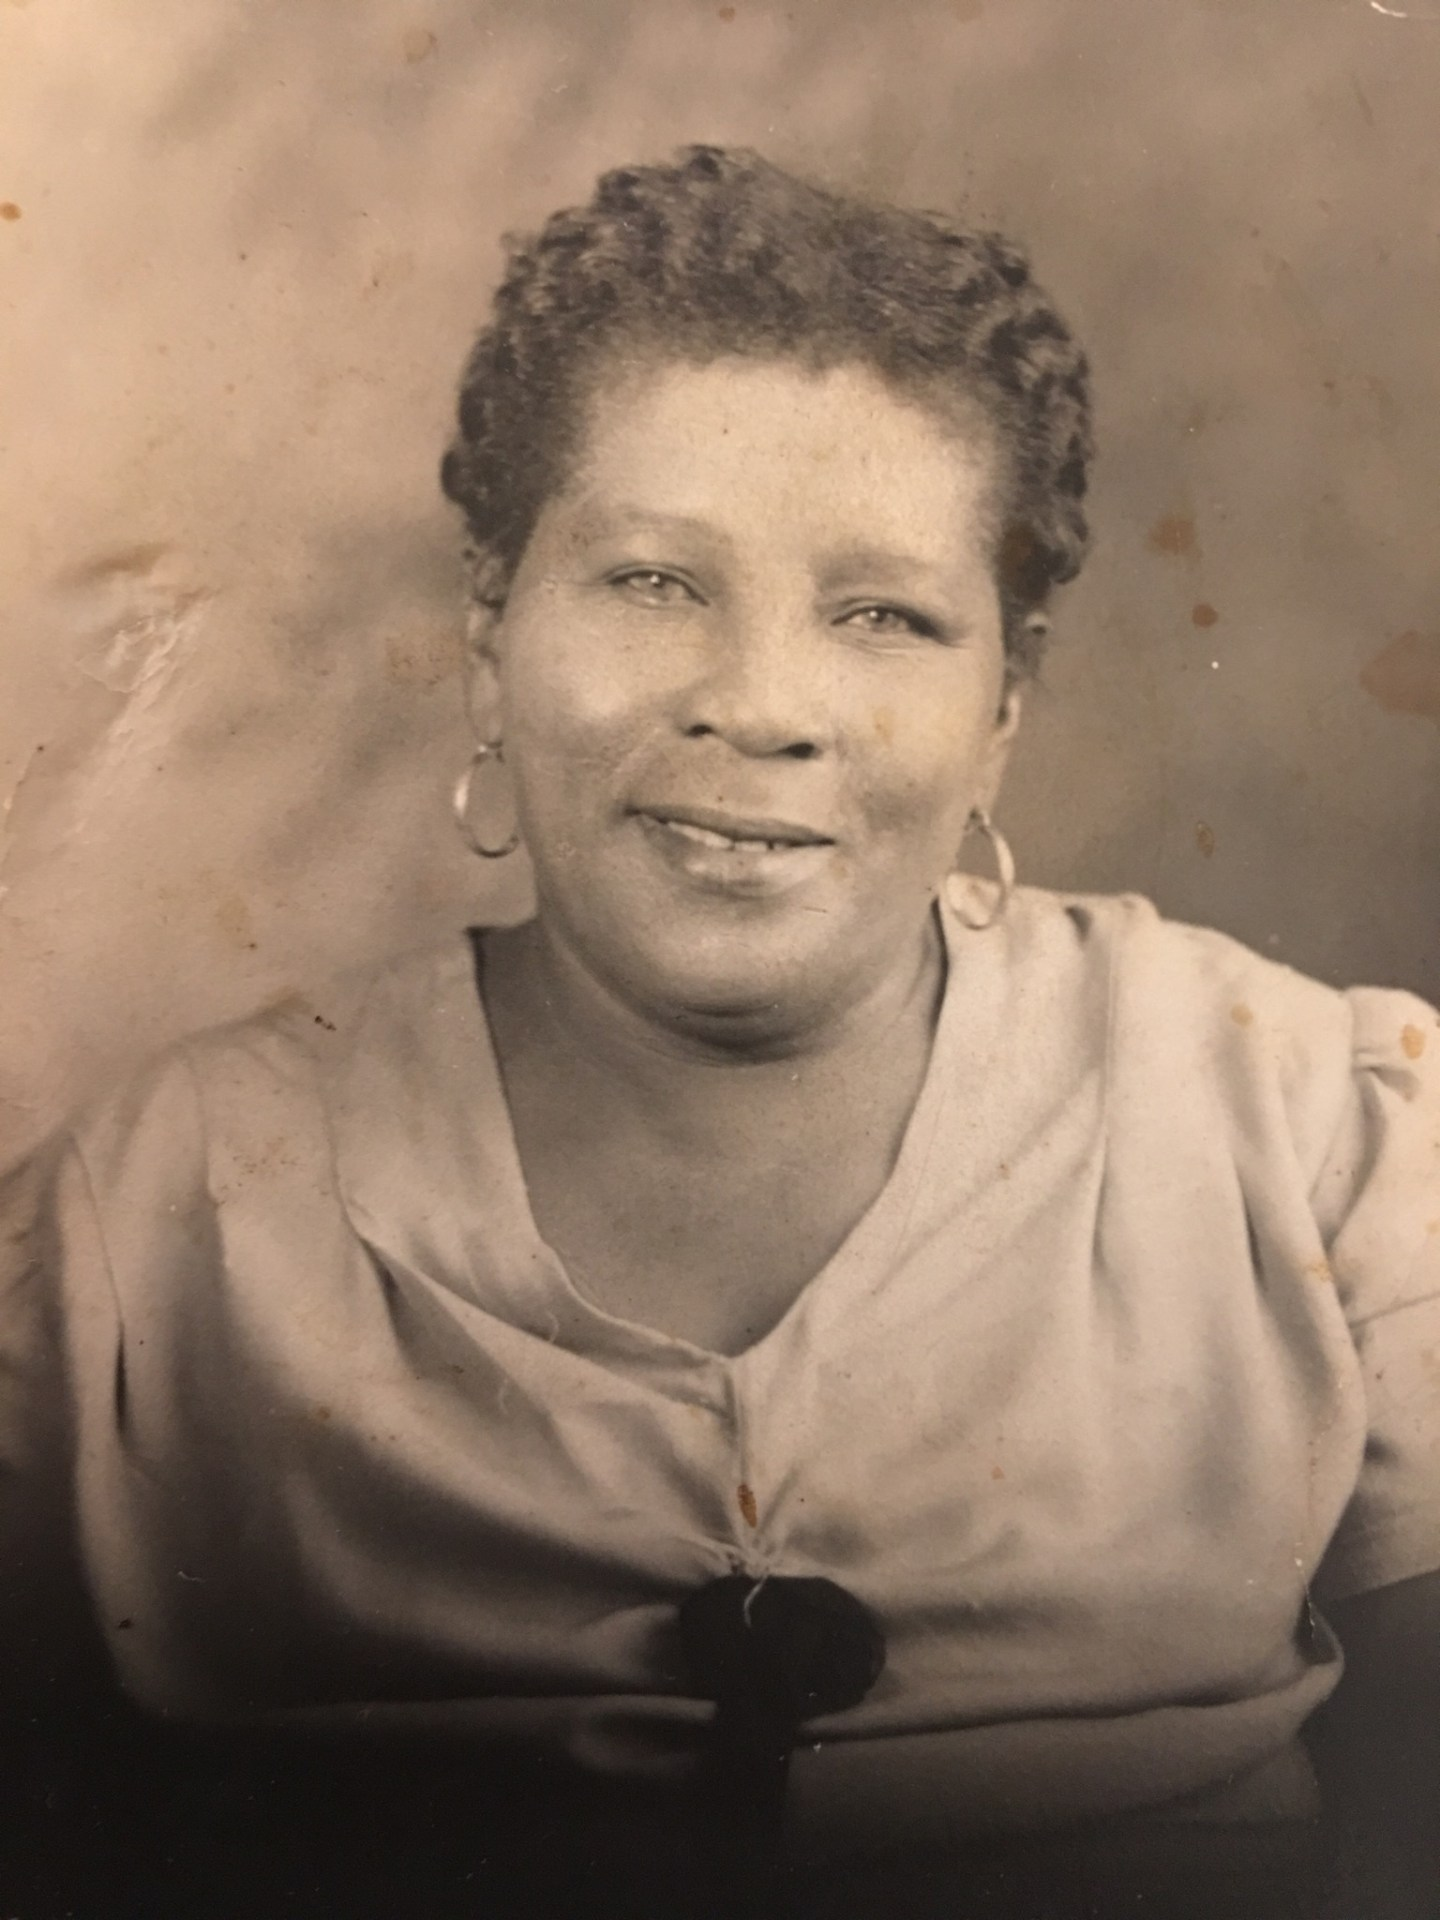 F6194C74-F811-4A20-B0FF-477C73565938-1-1440x1920 A Grandmother's Love: 3 Things I Learned from My Southern Grandmothers